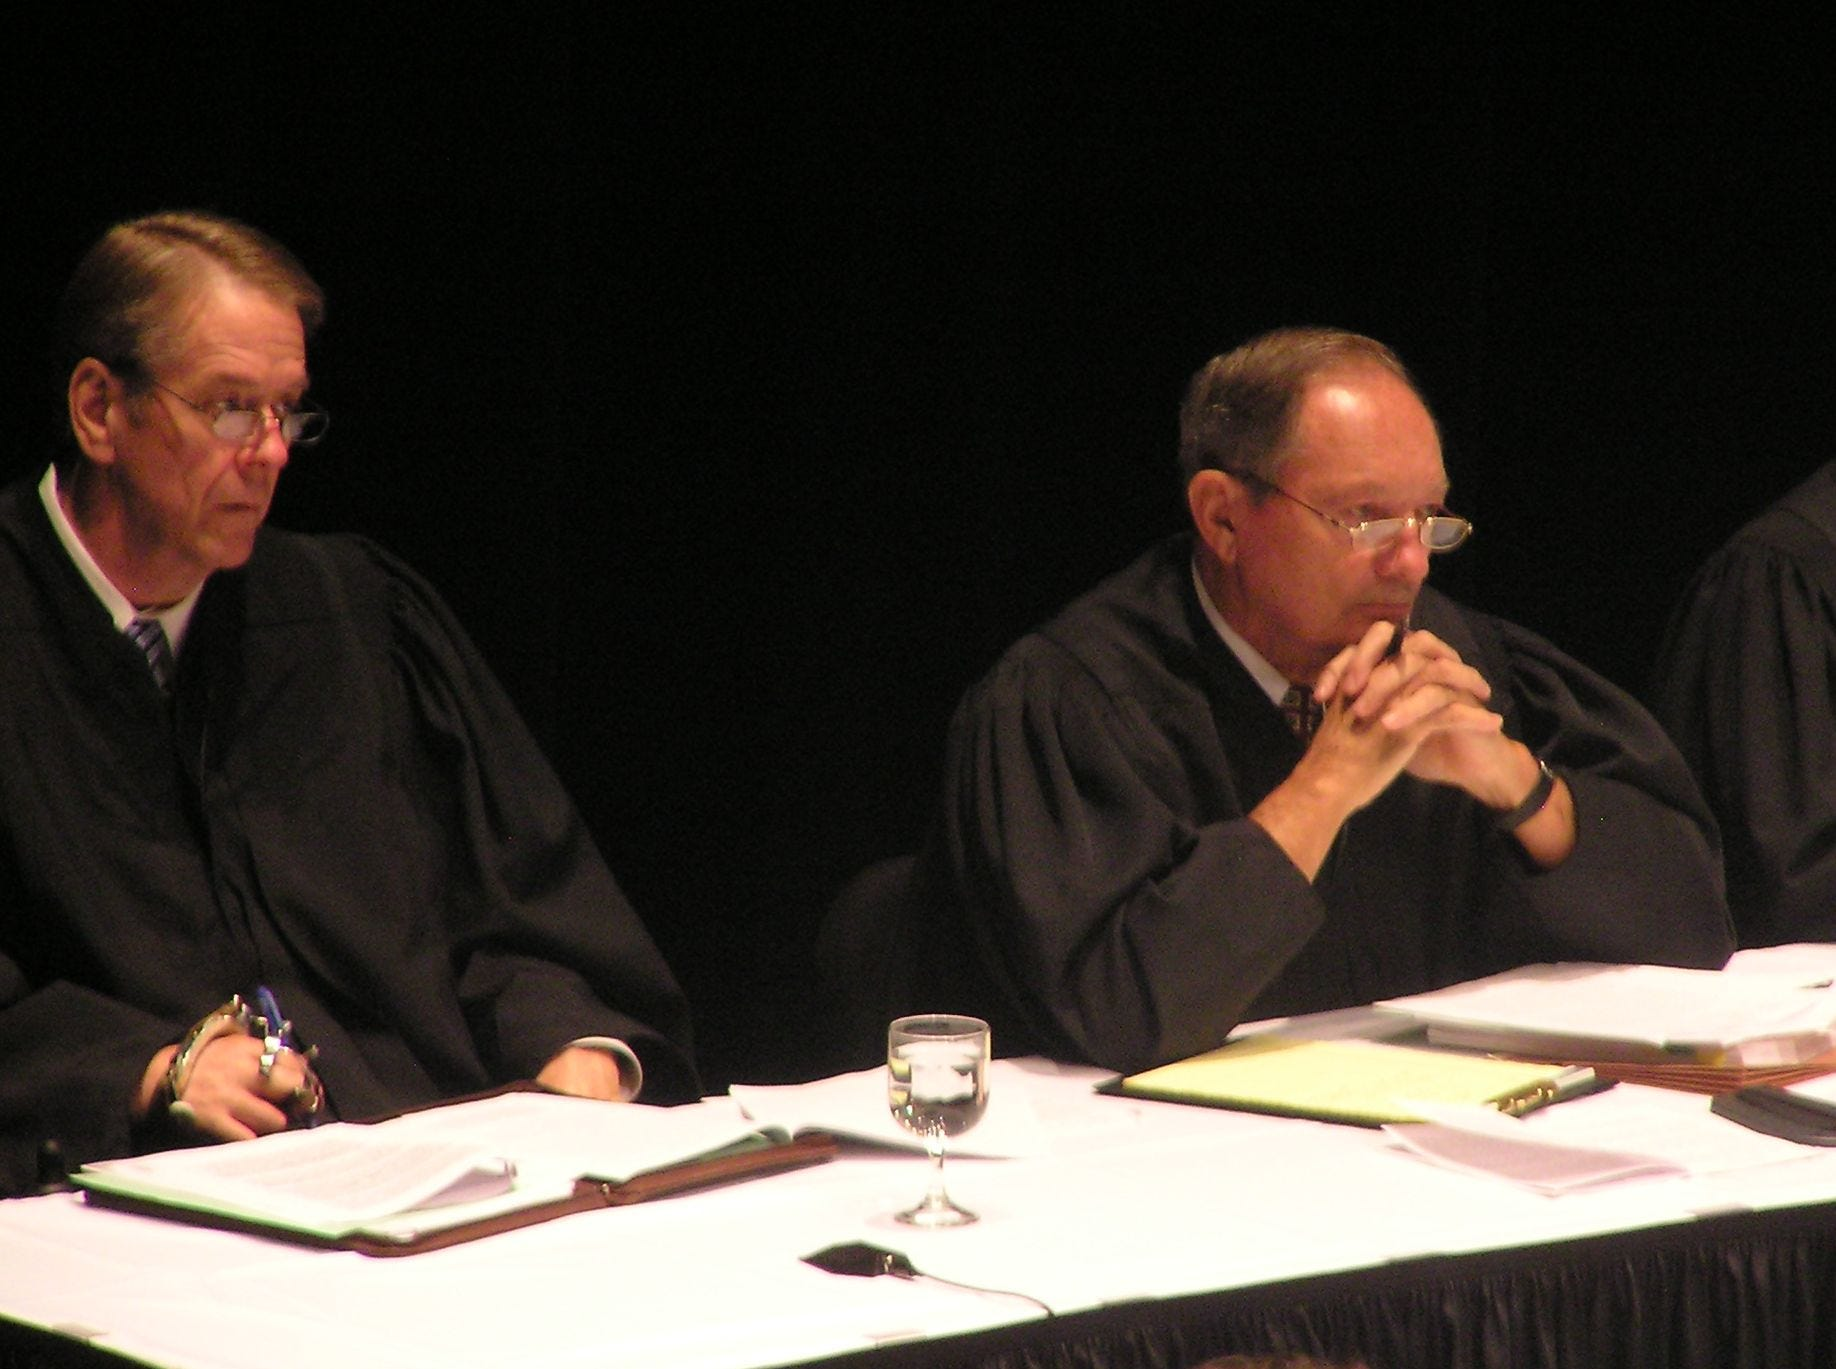 South Dakota Supreme Court Justices, from left, Steven Zinter and Richard Sabers and Chief Justice David Gilbertson listen to Bill Janklow (not pictured here) argue a case Monday, Oct. 2, 2006, in Sioux Falls, S.D. The former governor and congressman got his law license back in February after a 2003 manslaughter conviction for a fatal traffic accident. He's representing a father trying to regain custody of his daughter. (AP Photo/Carson Walker)